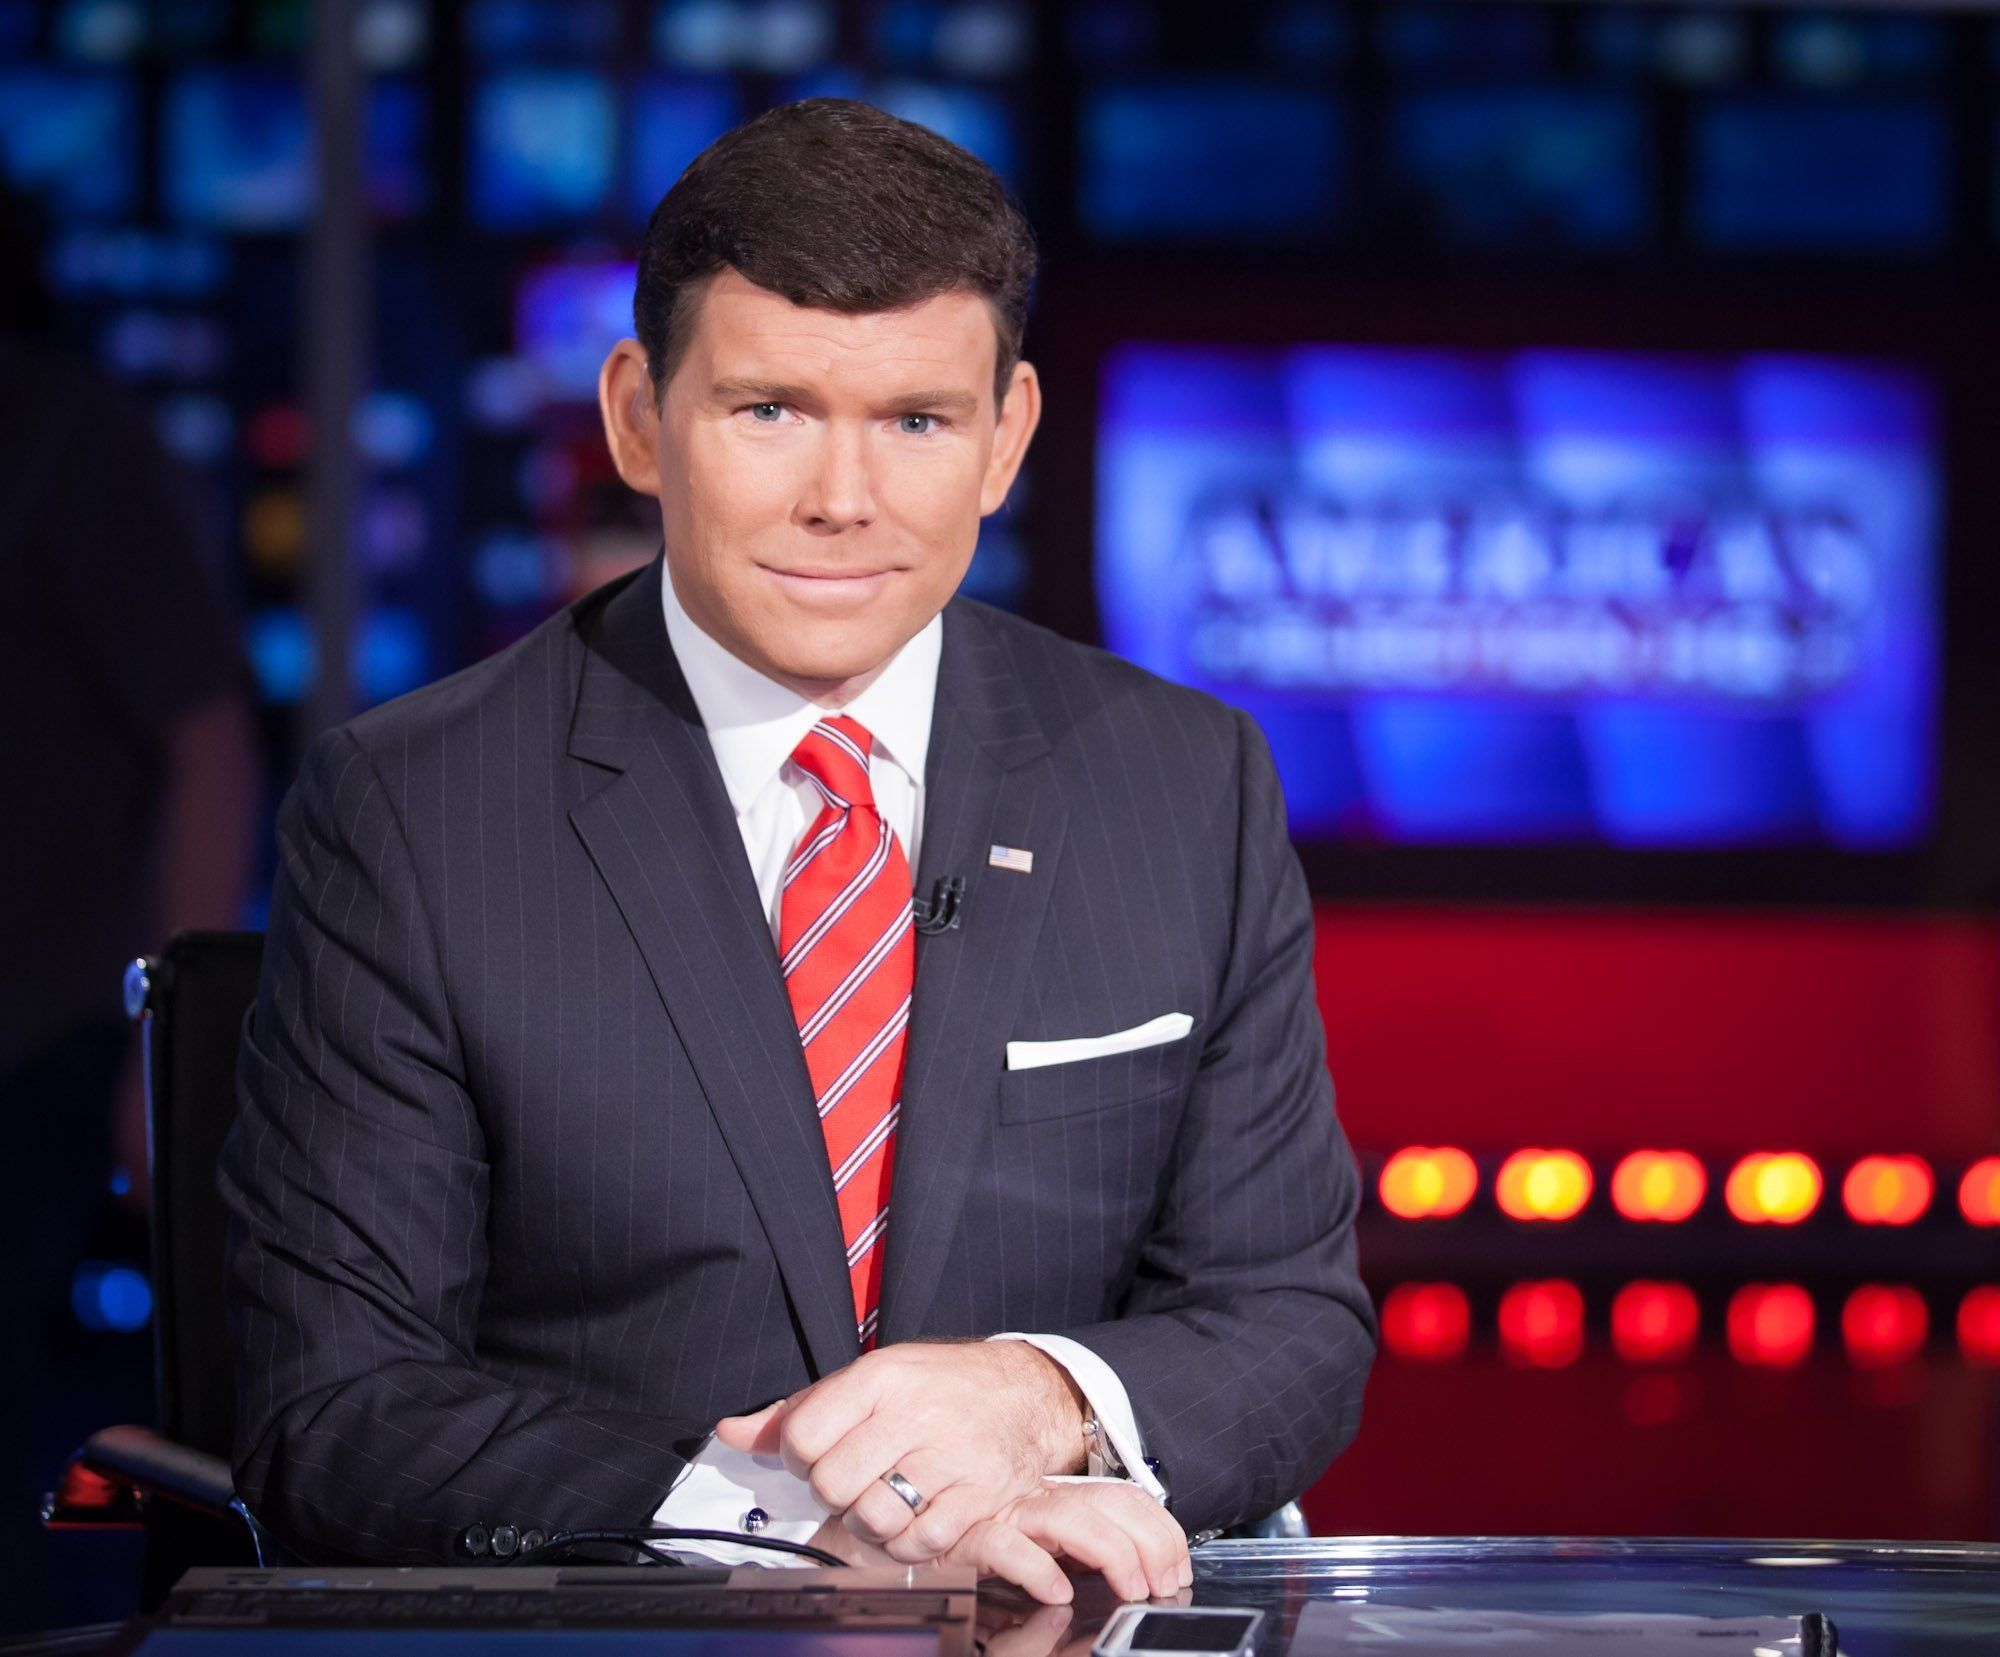 Bret Baier says he works independent of whatevers happening on that front